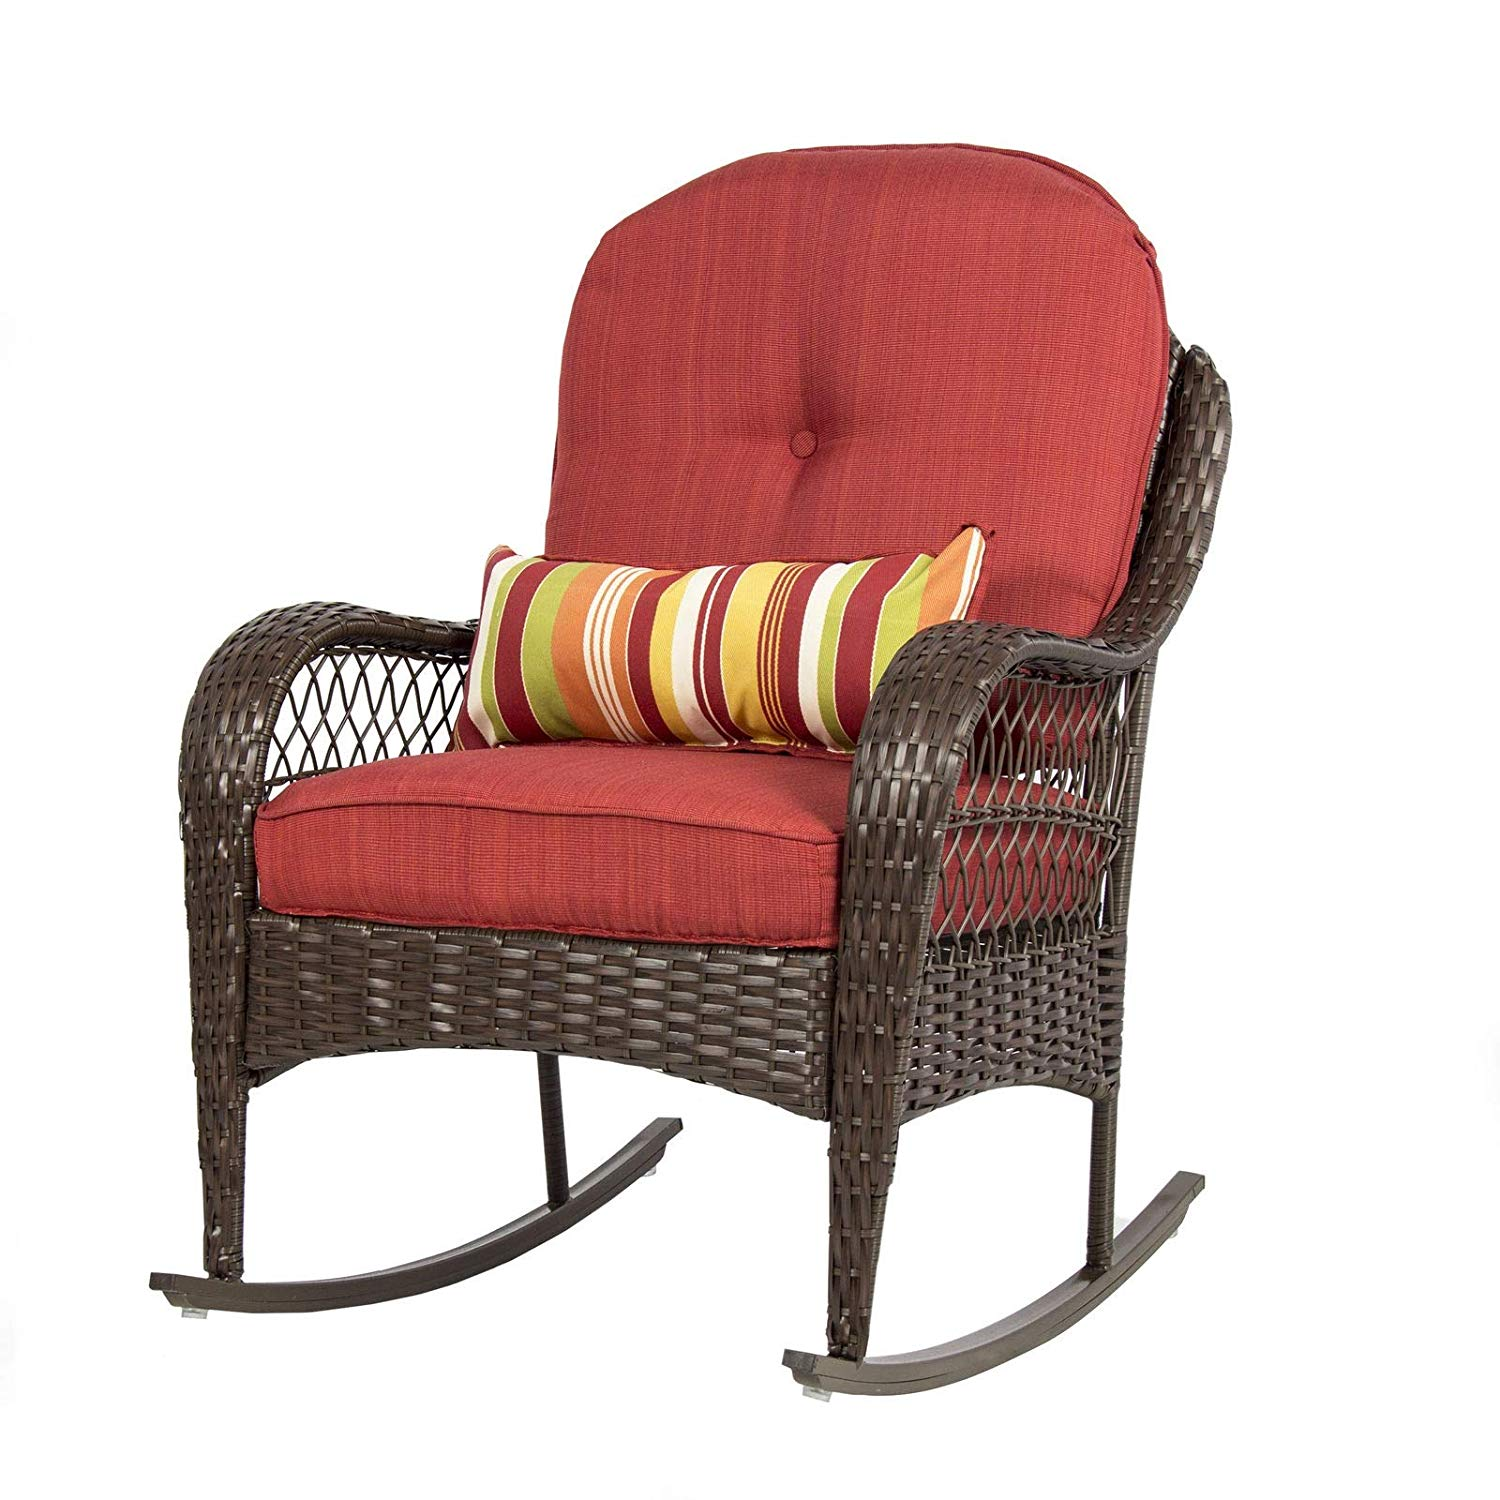 Picotech Rocking Wicker Chair Outdoor Red Lounge Thick Soft Cushion Steel Frame Rust-Resistant Elegant Durable Sturdy Contoured Seat Backrest Weather-Resistant Patio Backyard Porch Deck Terrace Pool